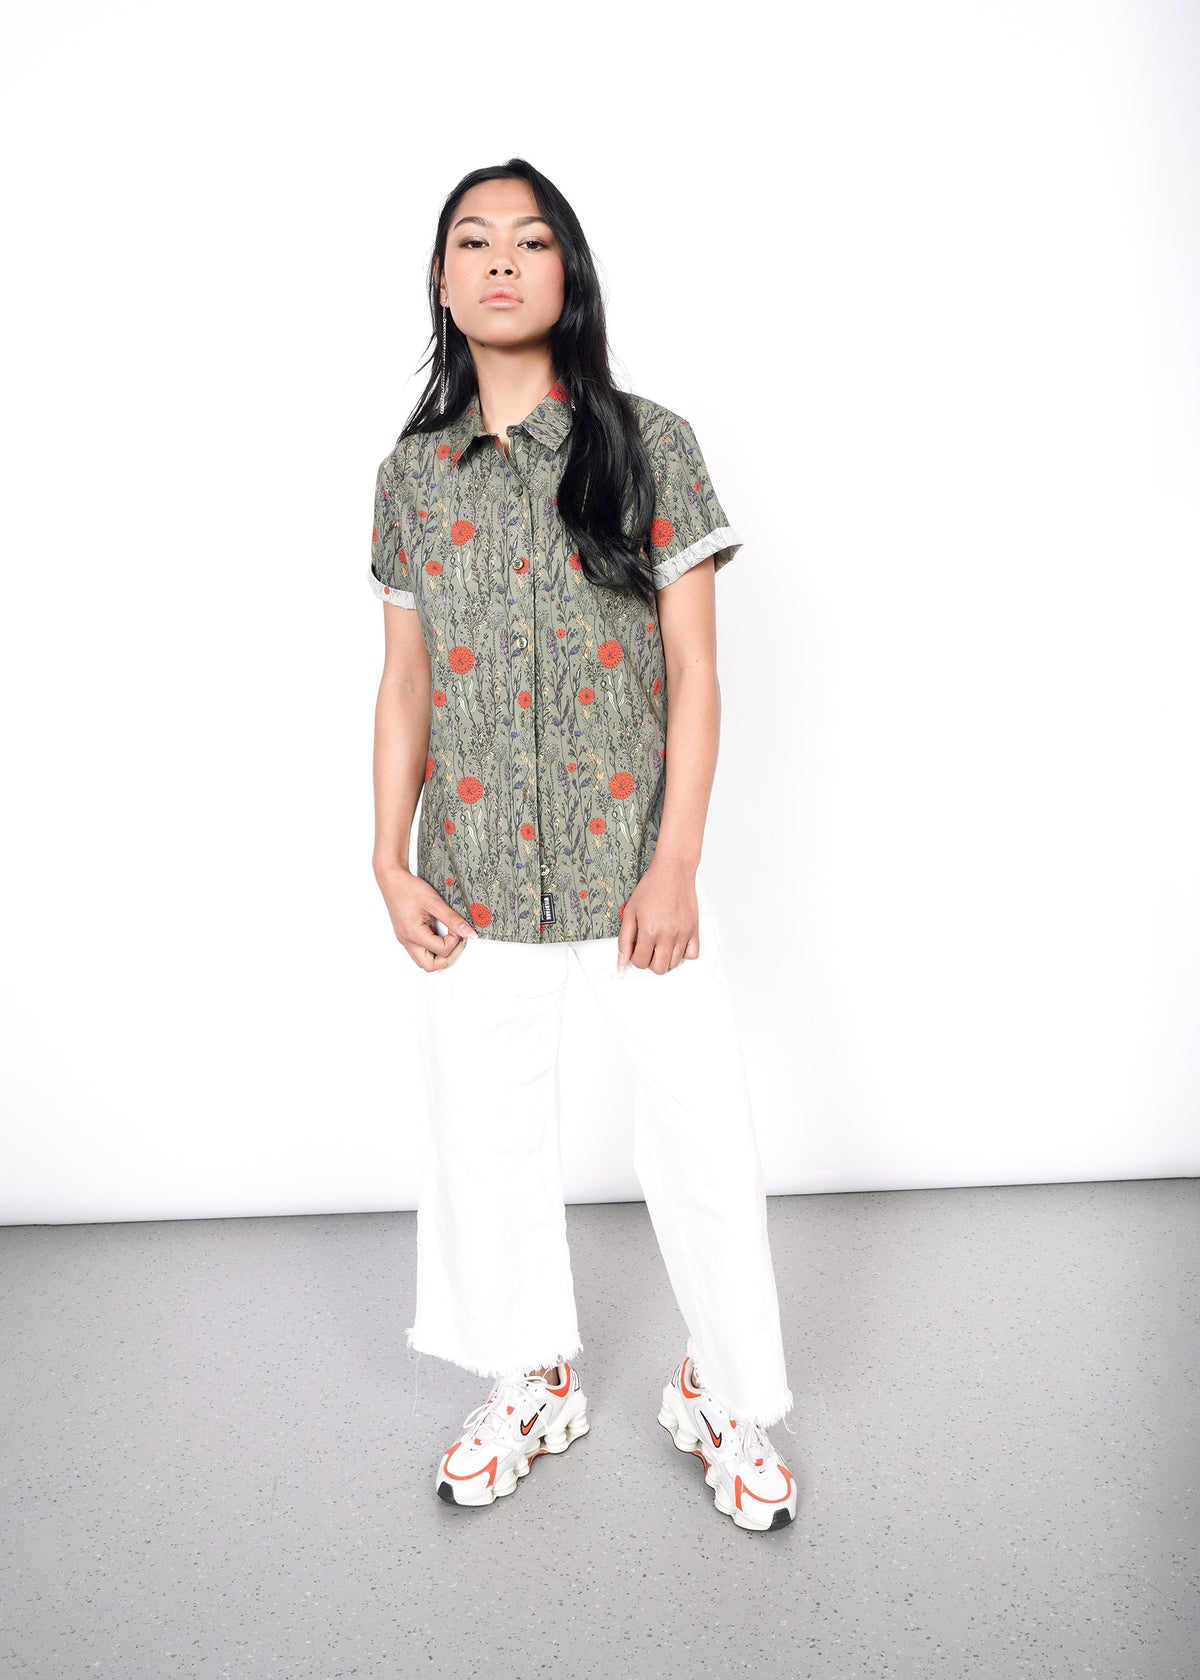 Model wearing botanical all over printed short sleeved button up shirt in size XS, with the sleeves cuffed, untucked, and with white pants